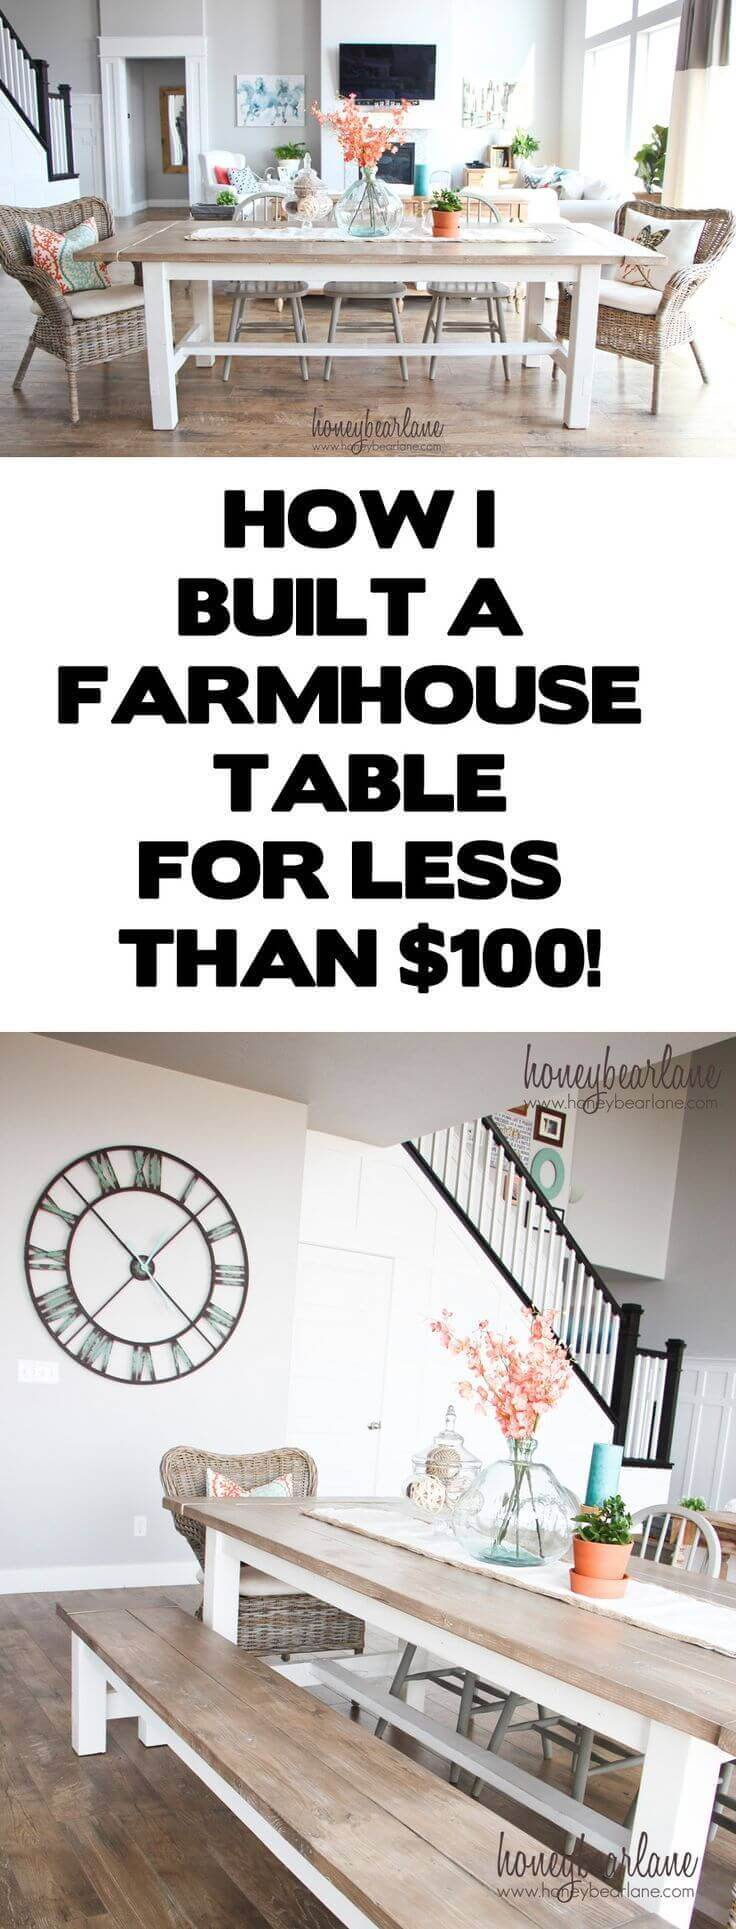 Get the Farm Fresh Look for Less